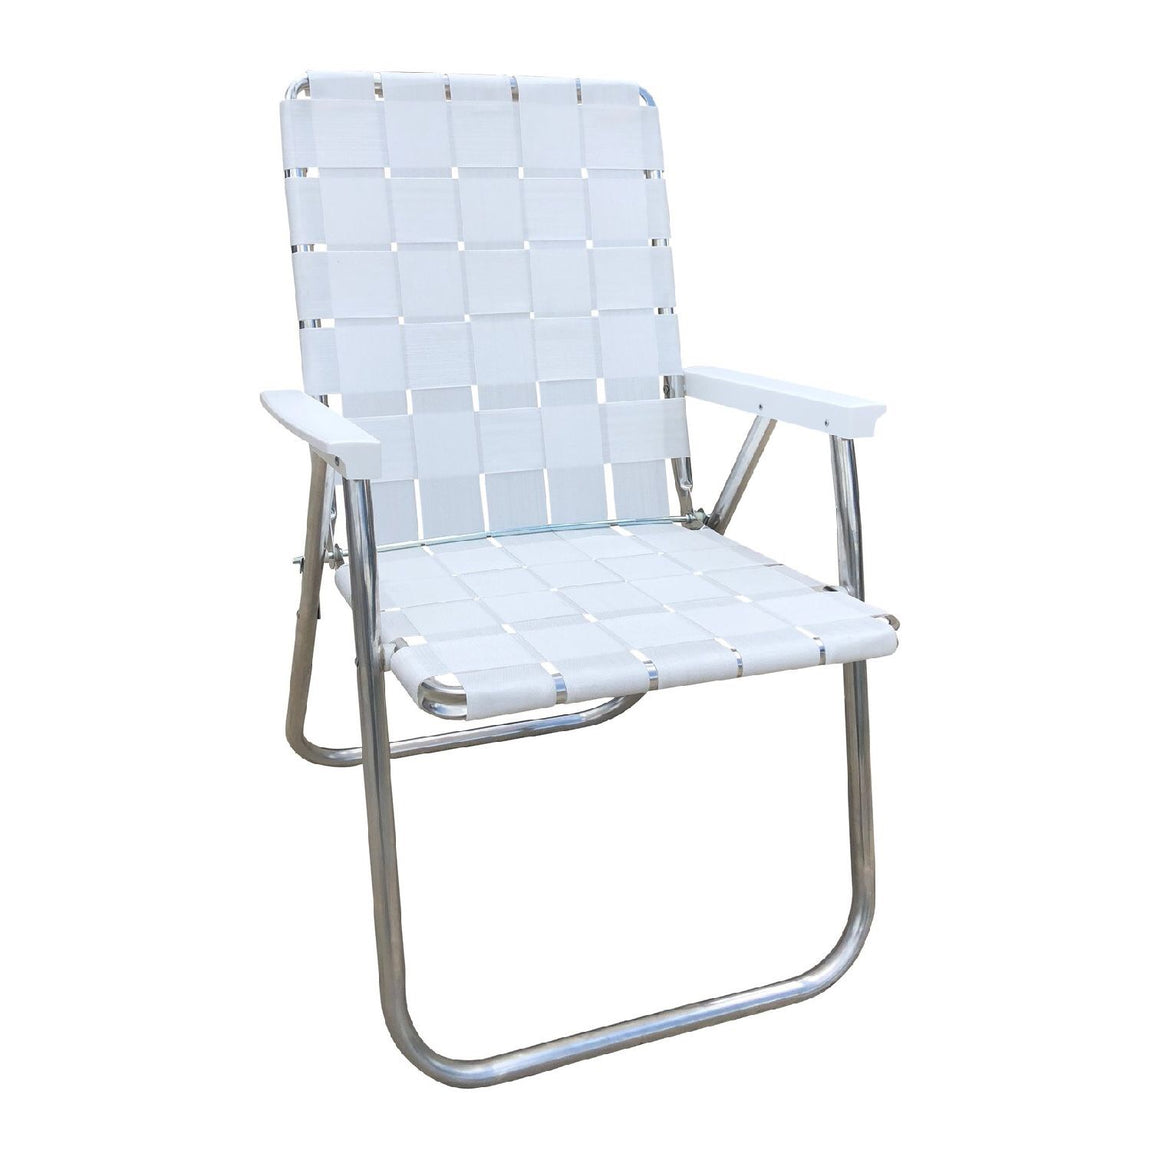 Lawn Chair | Deluxe White